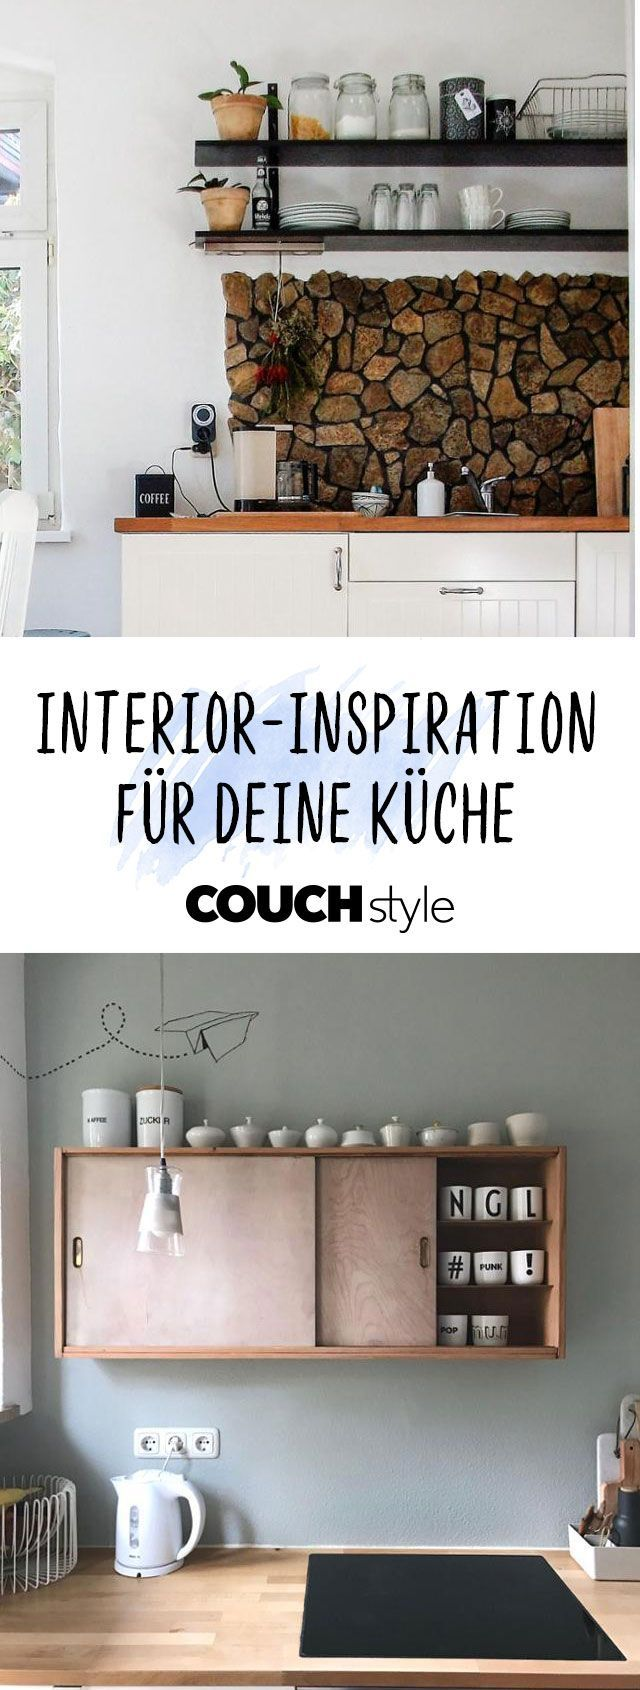 322 best Küche images on Pinterest